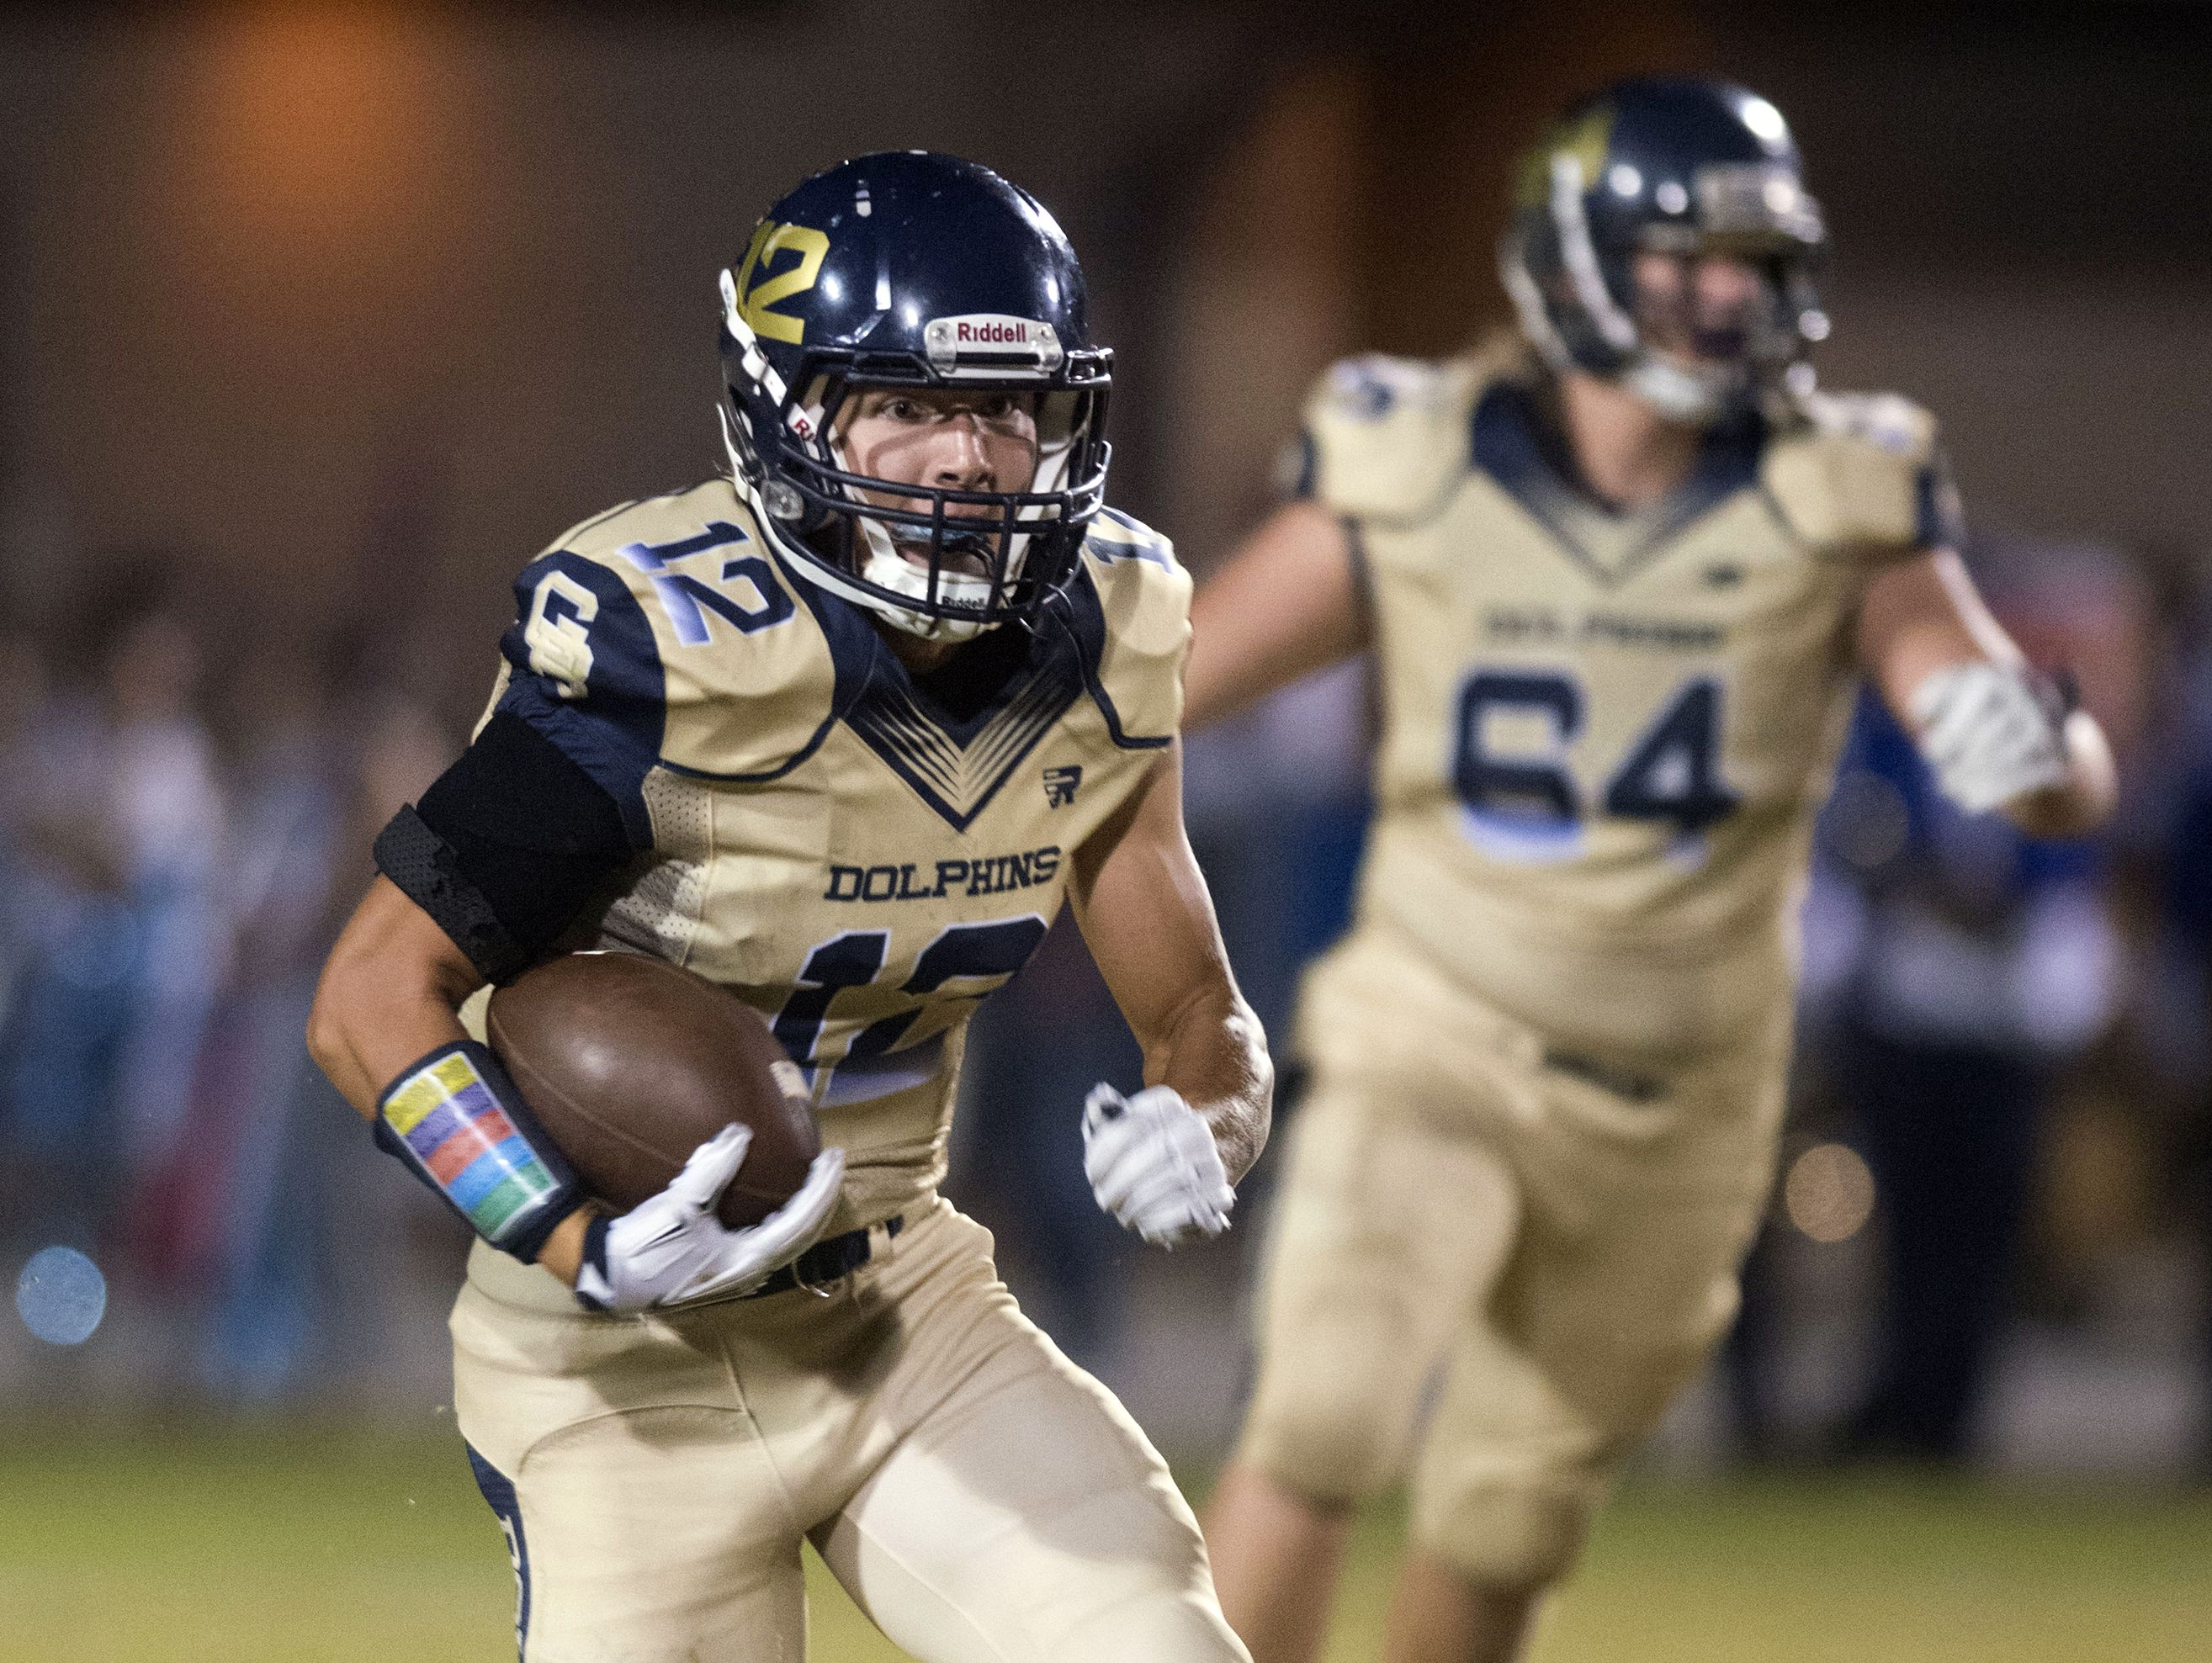 Gulf Breeze High School wide receiver, Cole Sheppard, (No. 12) runs up field for a big gain against the Pace High School defense Friday night's District 2-6A game.